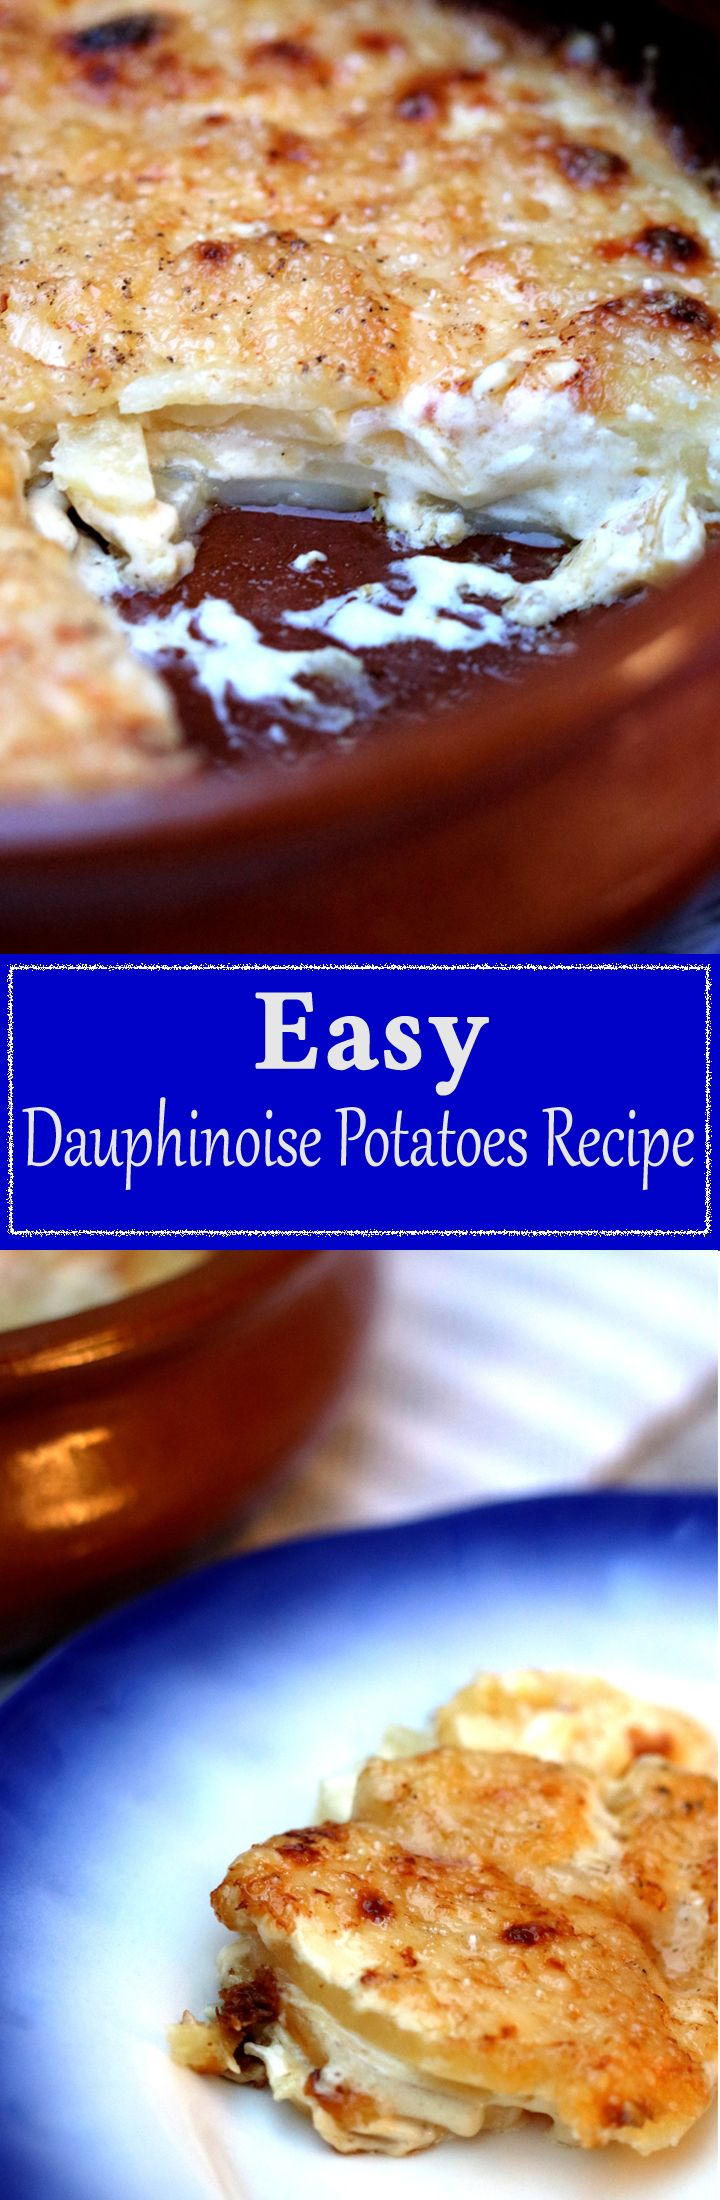 The best potato dish EVER, but so easy to make too! This Dauphinoise potato recipe is so simple, with Gruyere cheese on top too it's out of this world good!!